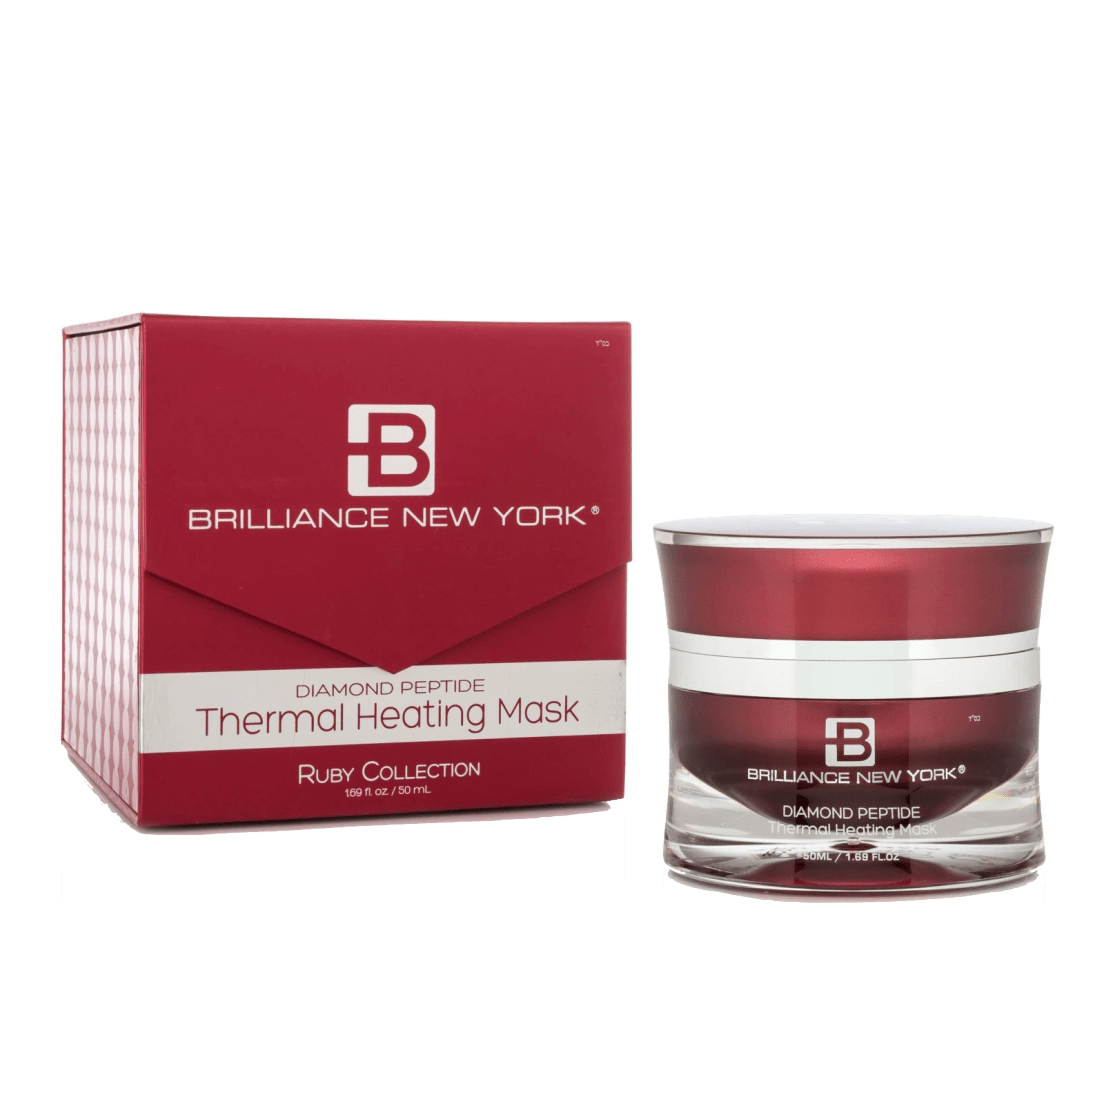 683d9b29de4 Brilliance New York Rubies Collection Thermal Facial Mask and Serum ...